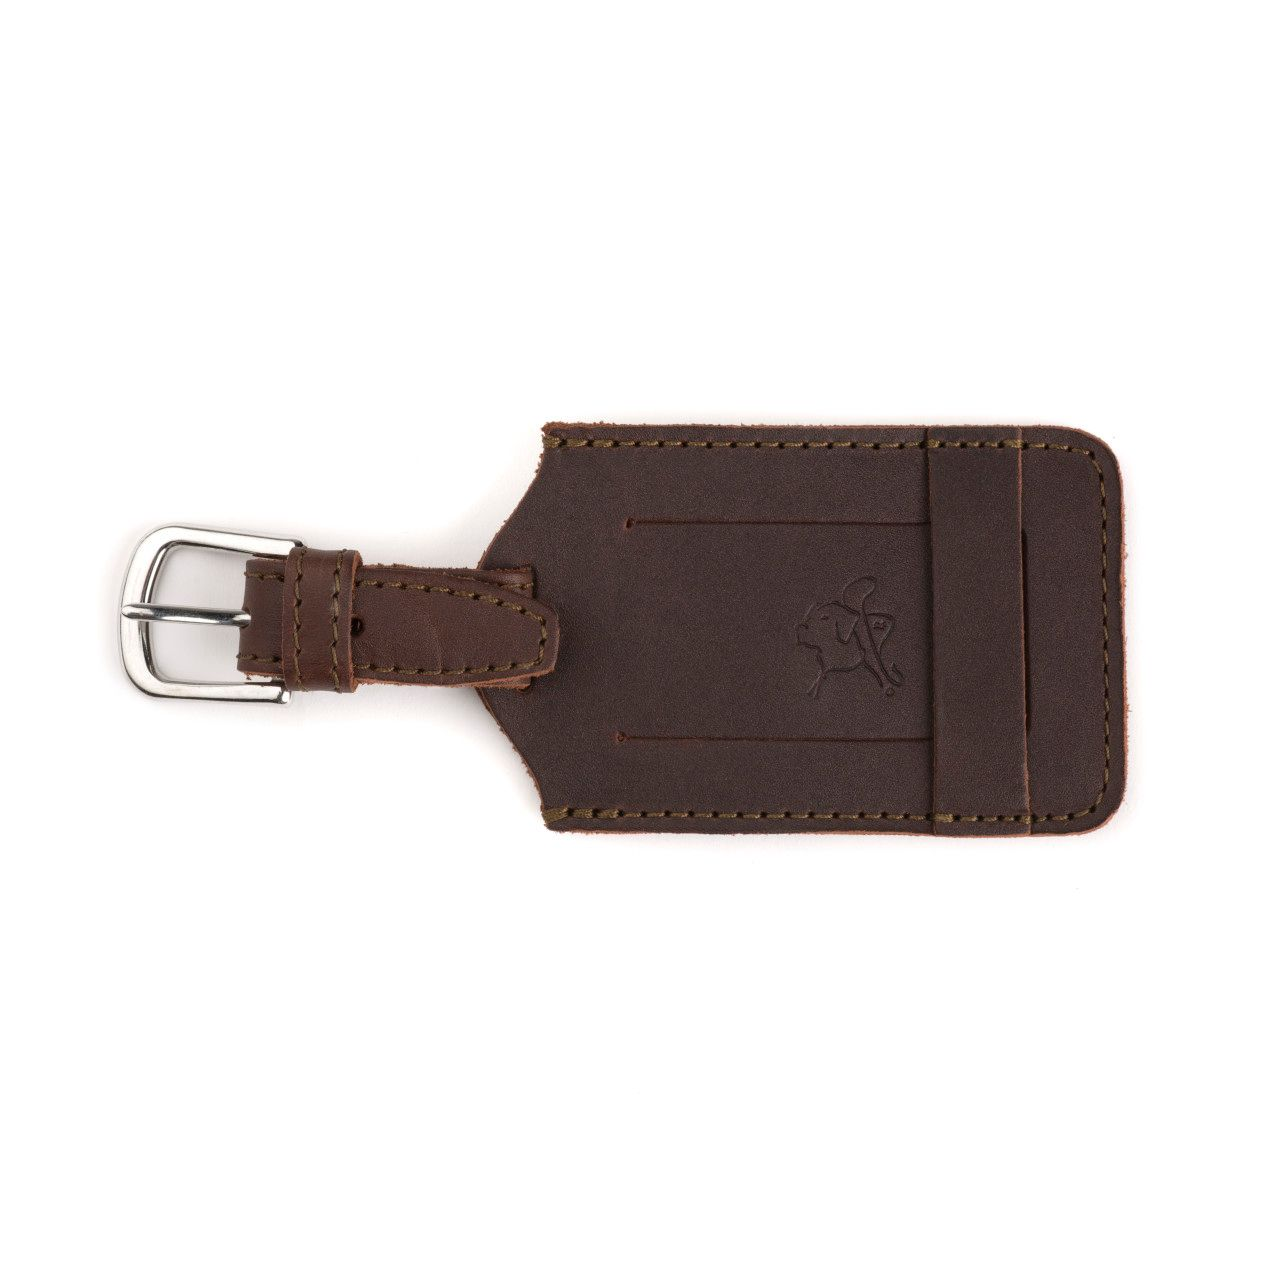 leather luggage tag in chestnut leather